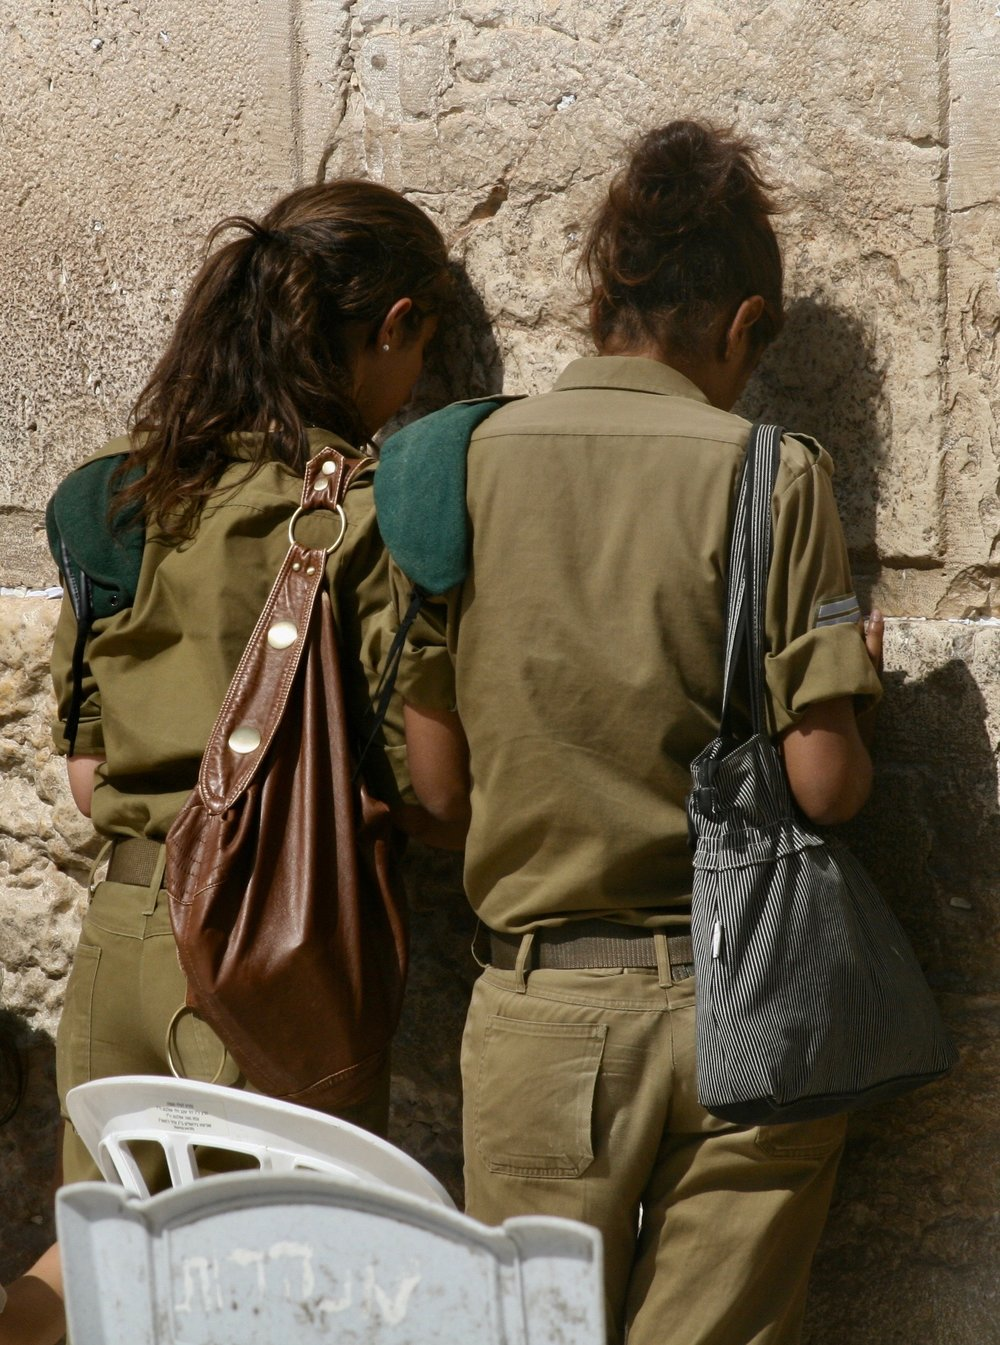 People-Soldiers at Wailing Wall.jpg